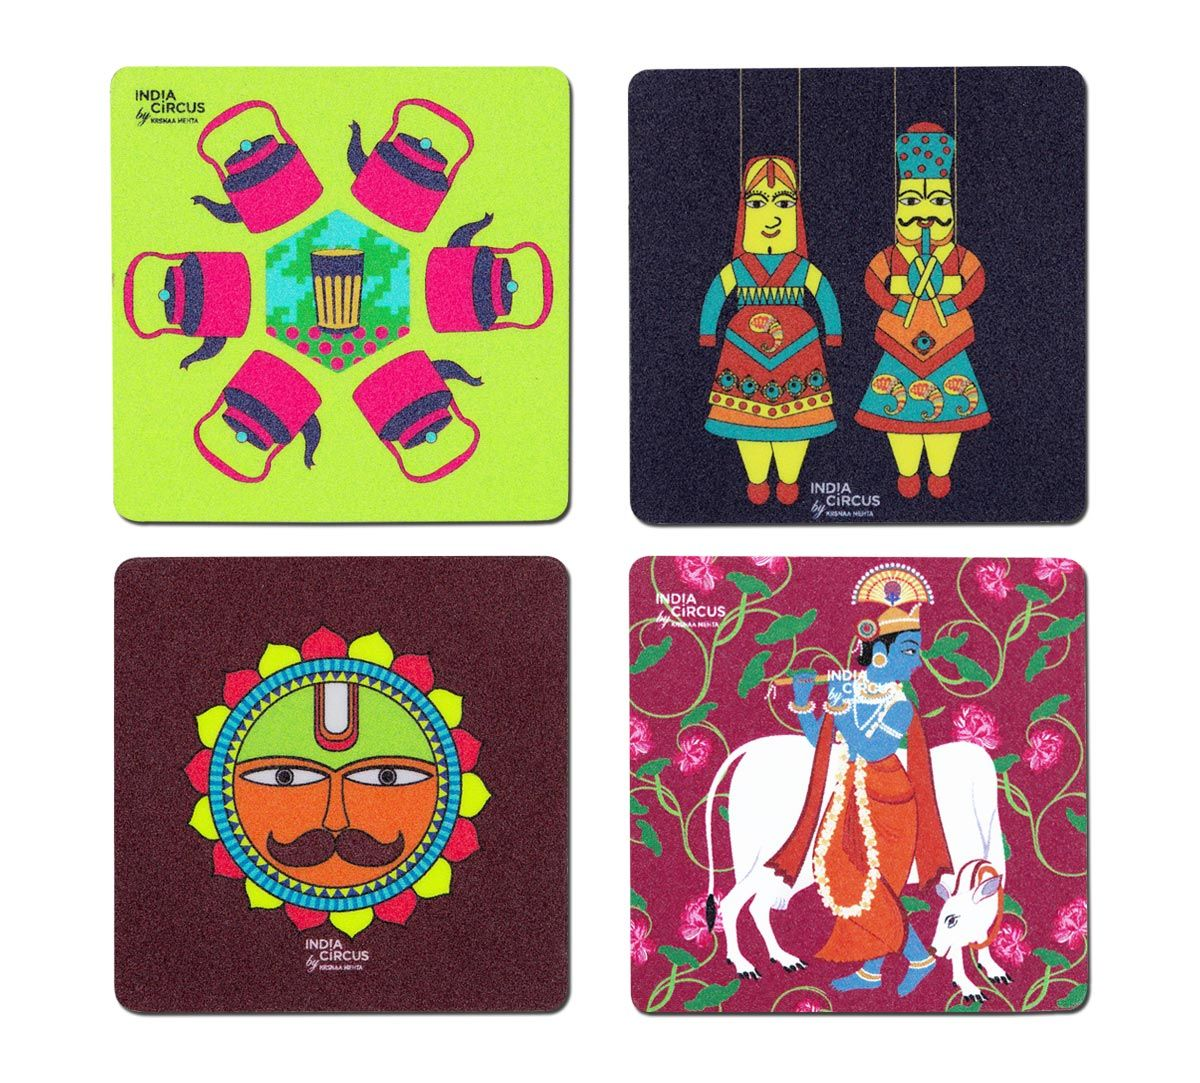 Lucid Yatra Fridge Magnet (Set of 4)